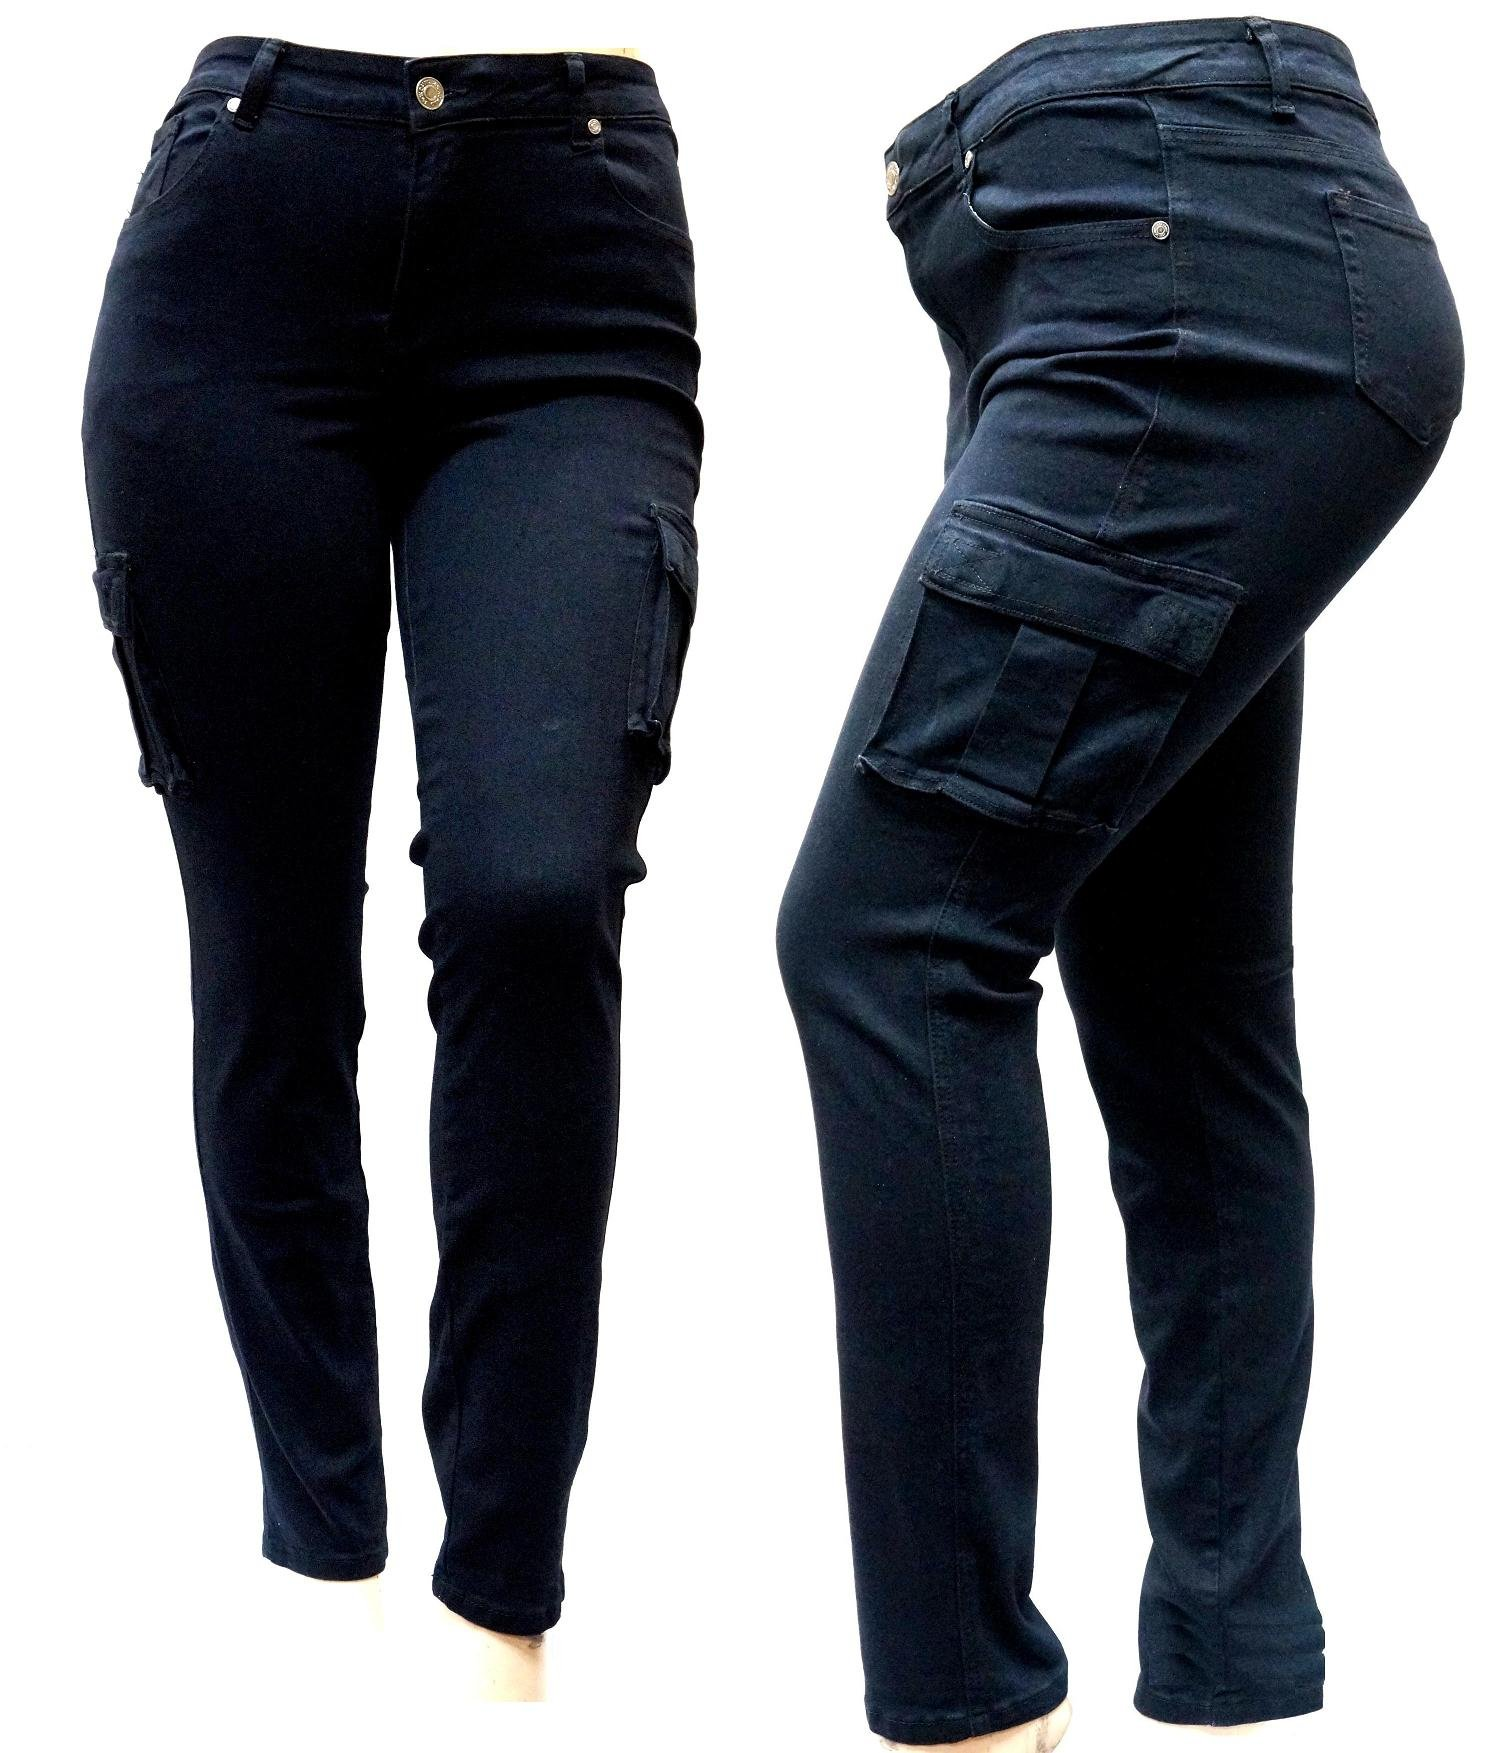 Women's Plus Size Drawstring Relaxed Fit High Waist Full Length Cargo Pants (Black Cargo Skinny Jeans, 22)